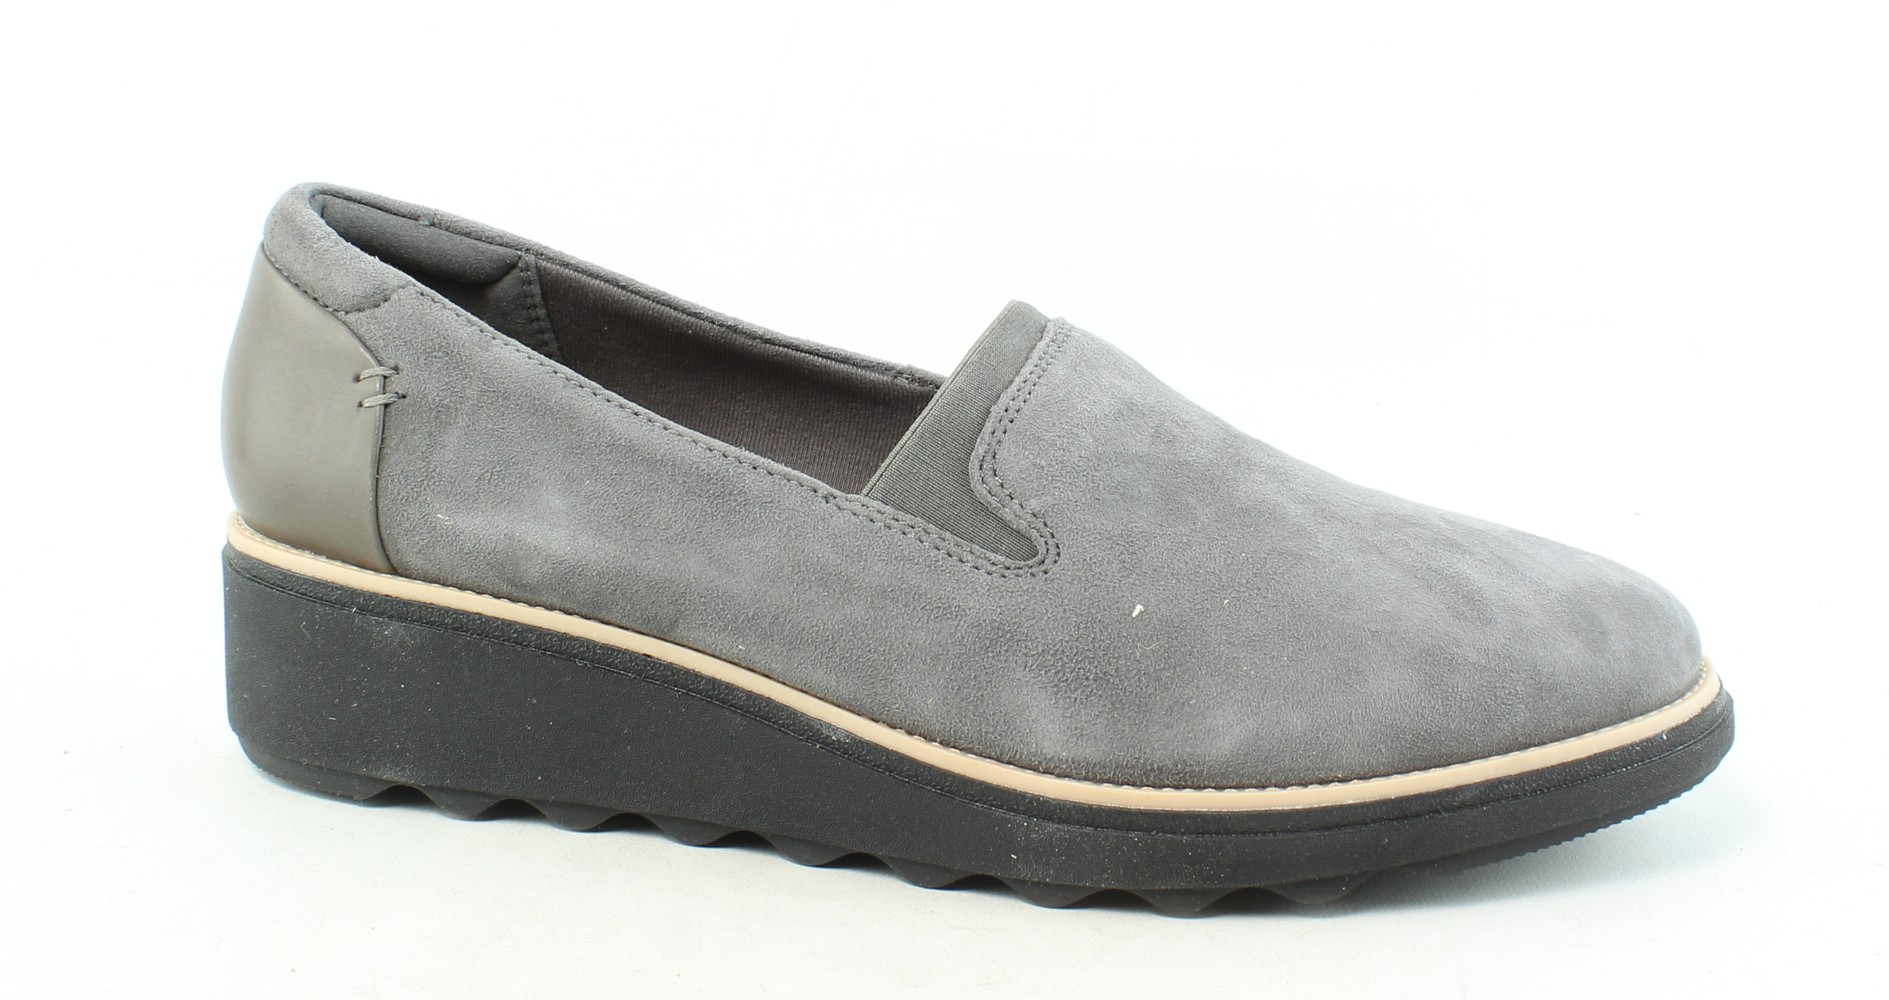 7dad2eff55597 Clarks Womens Sharon Dolly Grey Suede Loafers Size 11 (279800) | eBay